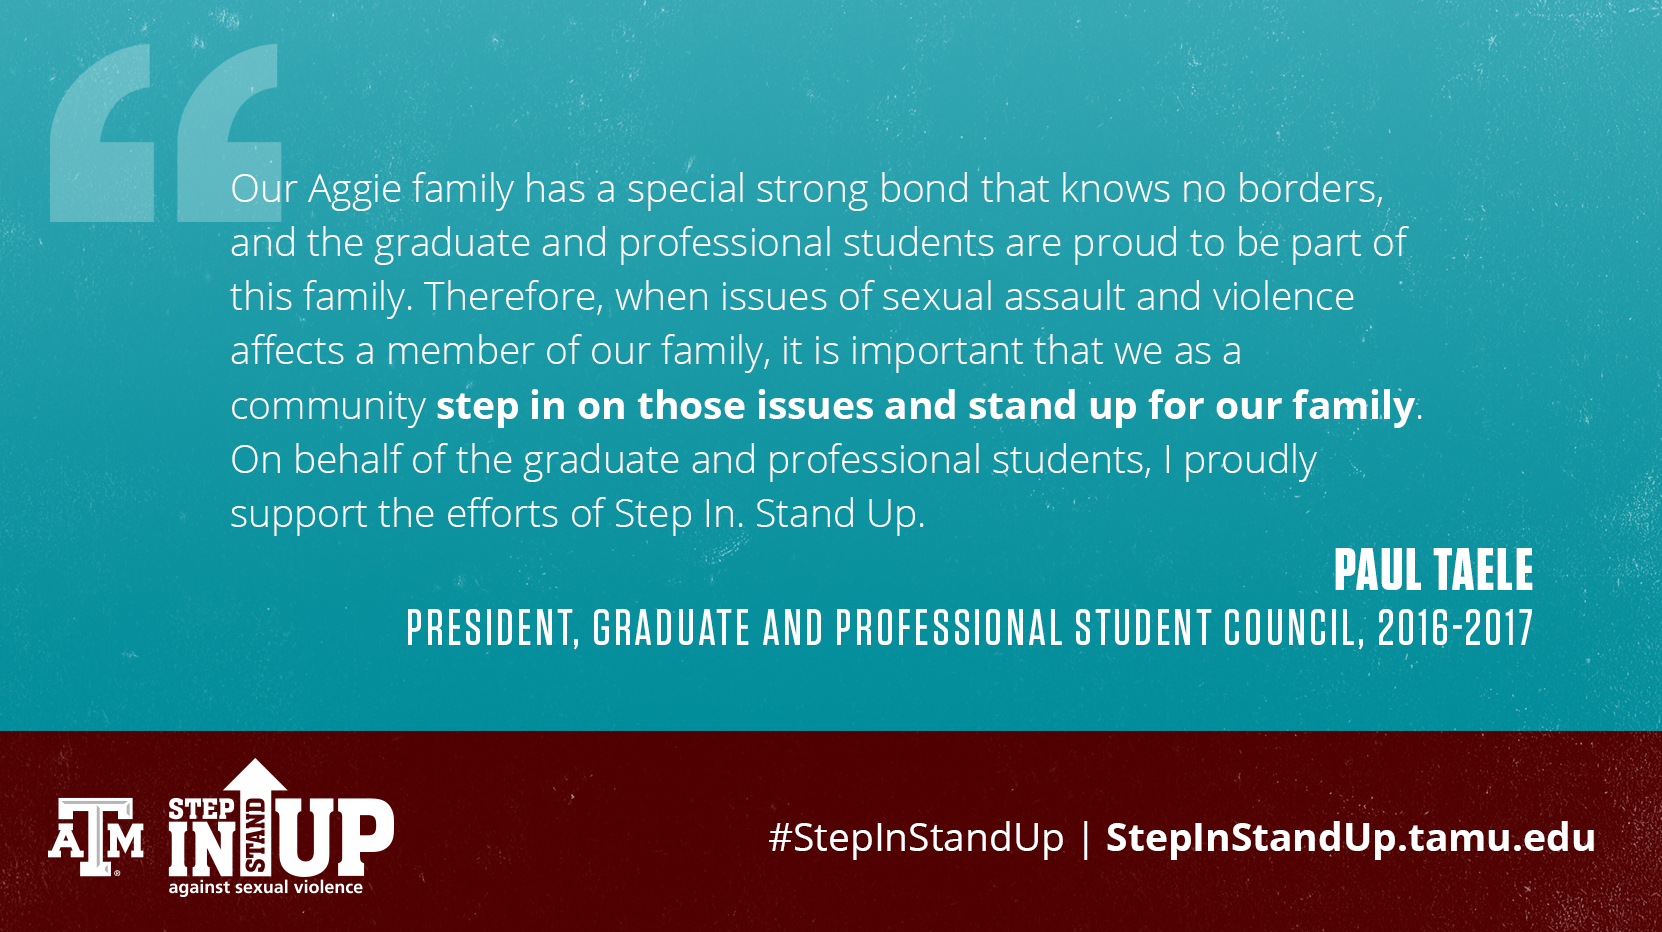 Our Aggie family has a special strong bond that knows no borders, and the graduate and professional students are proud to be part of this family. Therefore, when issues of sexual assault and violence affects a member of our family, it is importanat that we as a community step in on those issues and stand up for our family. On behalf of the graduate and professional students, I proudly support the efforts of Step In. Stand Up. - Paul Taele President, Graduate and Professional Student Council, 2016-2017